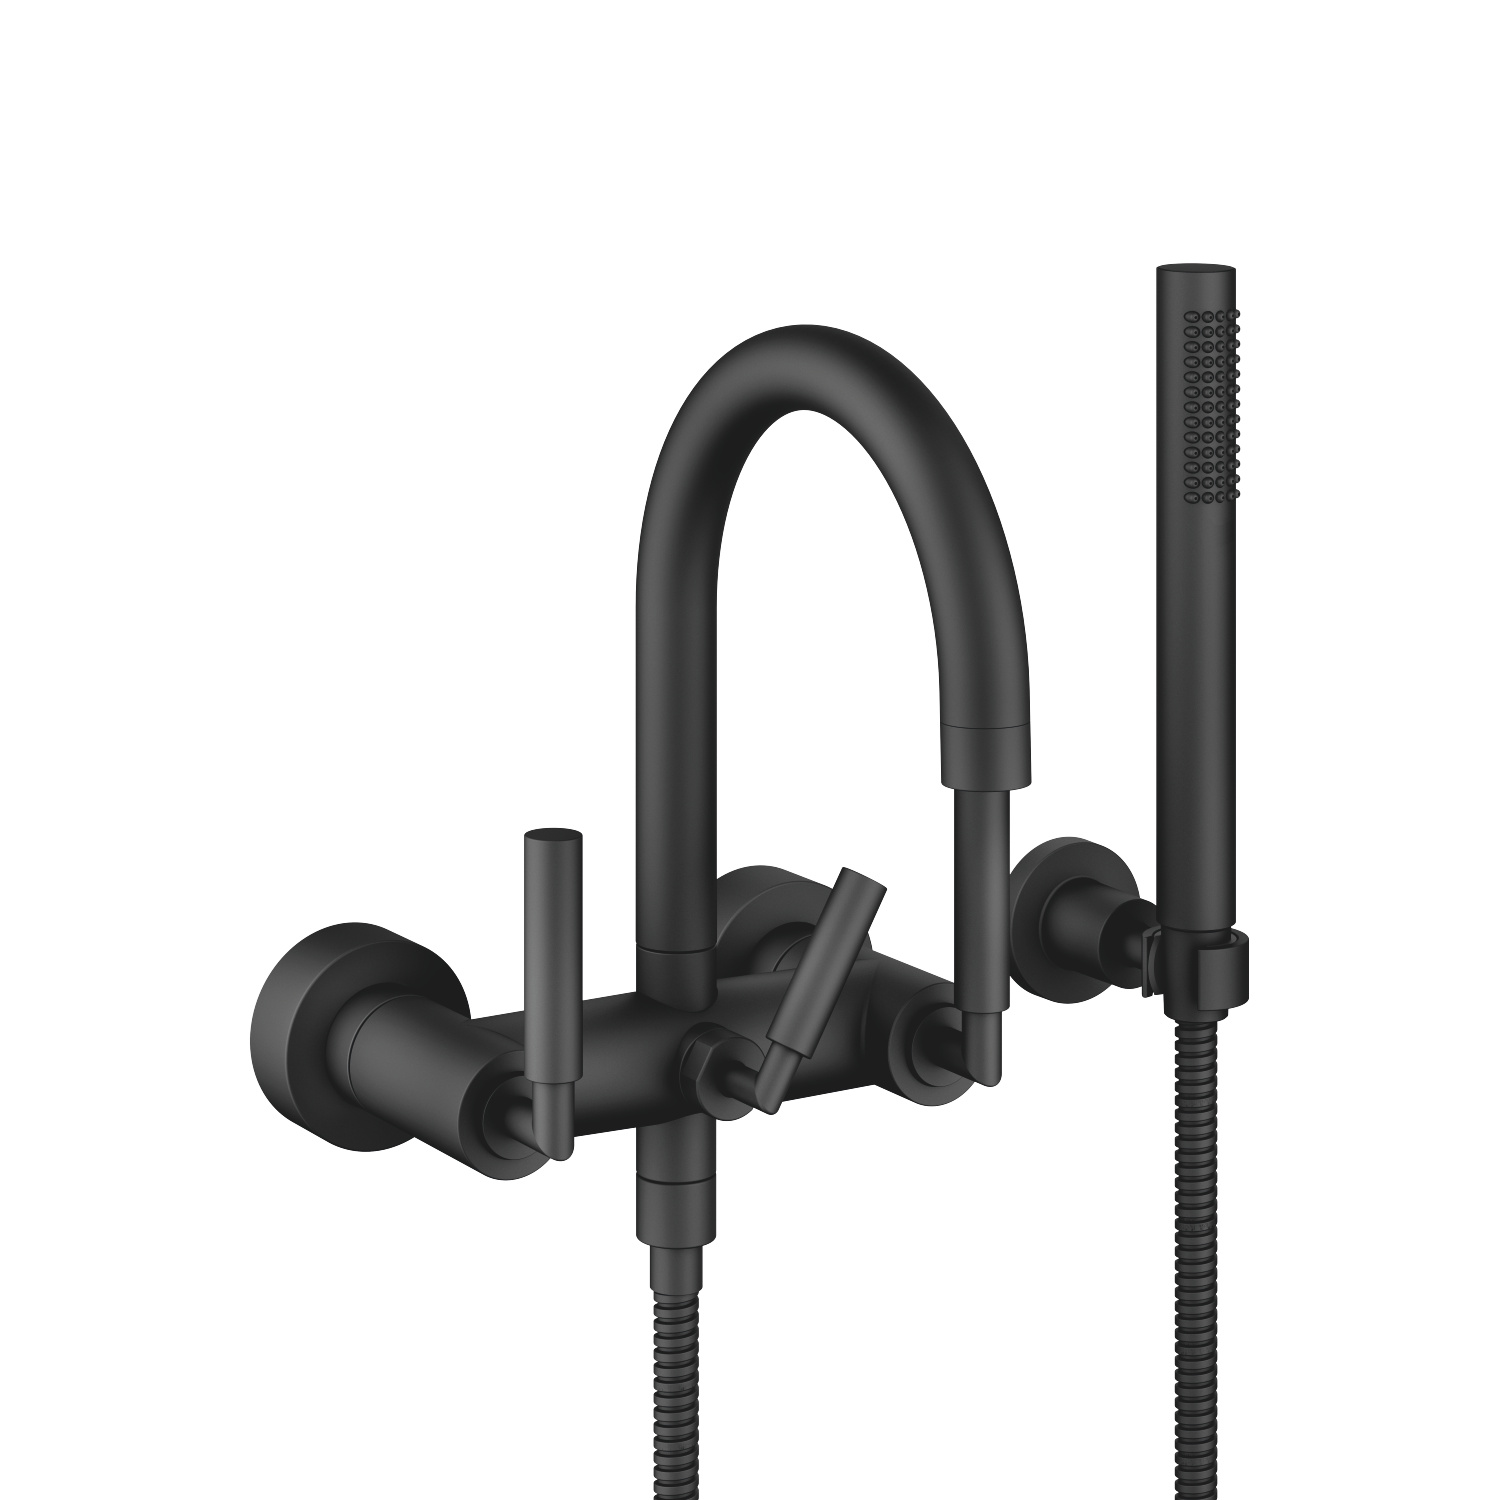 Bath mixer for wall mounting with hand shower set - matt black